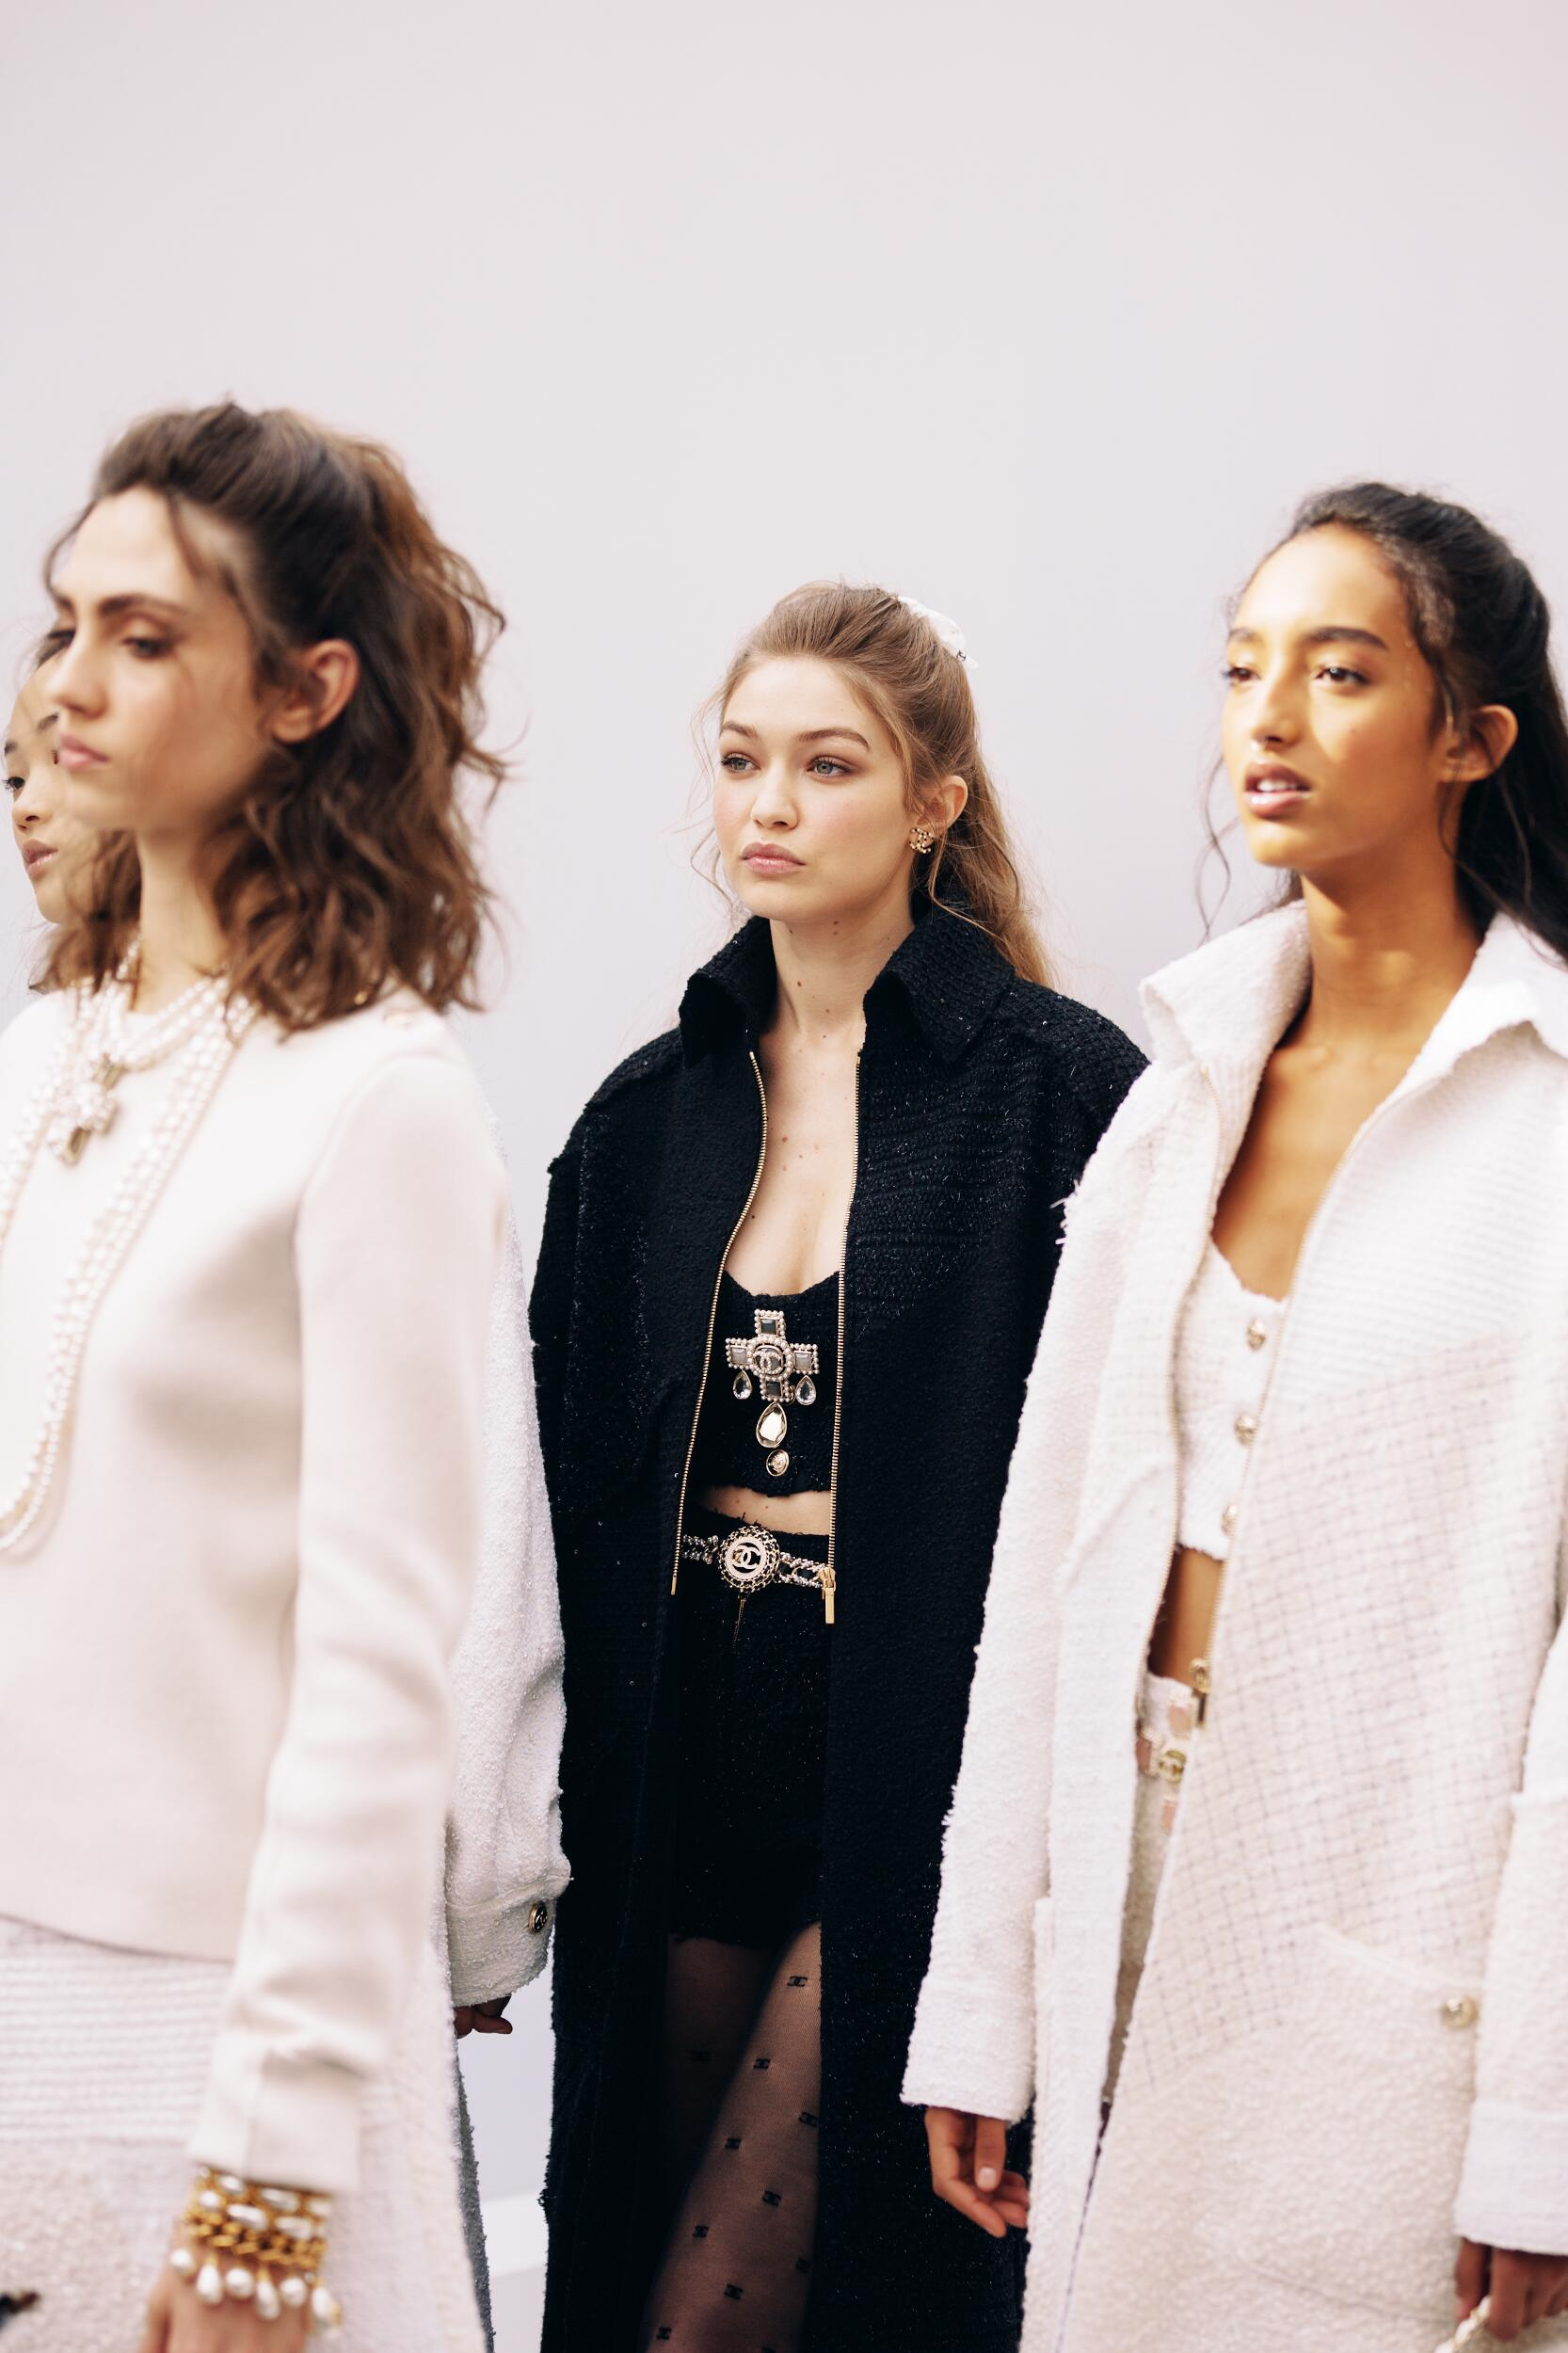 Backstage Chanel Models Trends 2020